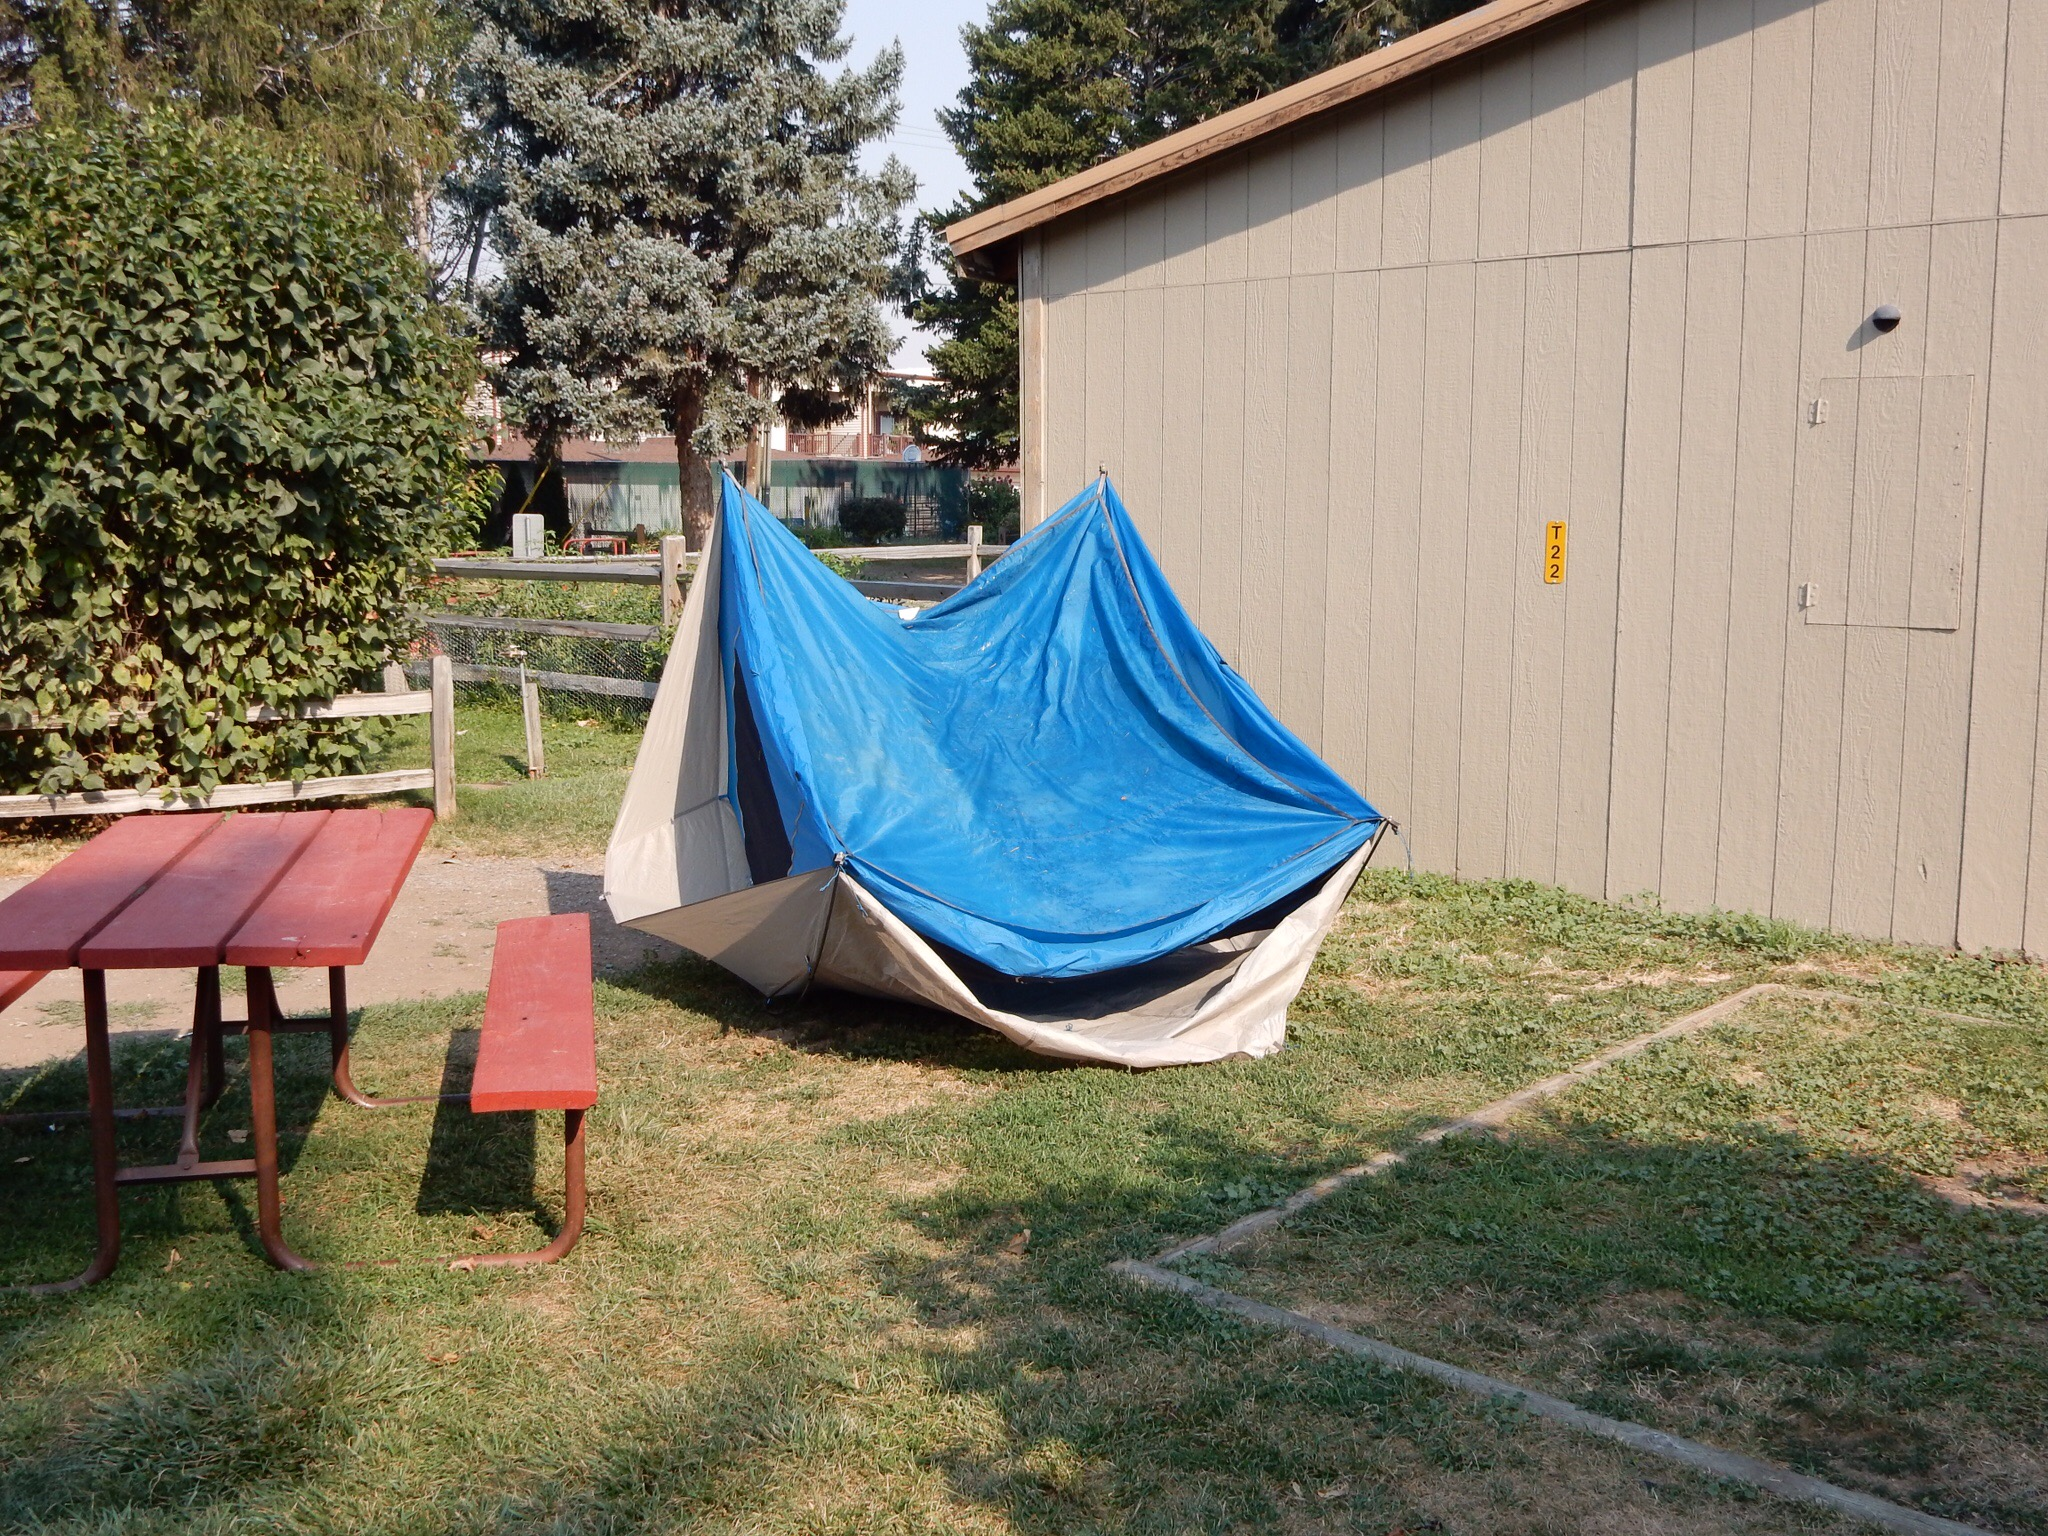 Using the morning Missoula sun to dry the last of the Cody rain from my tent.